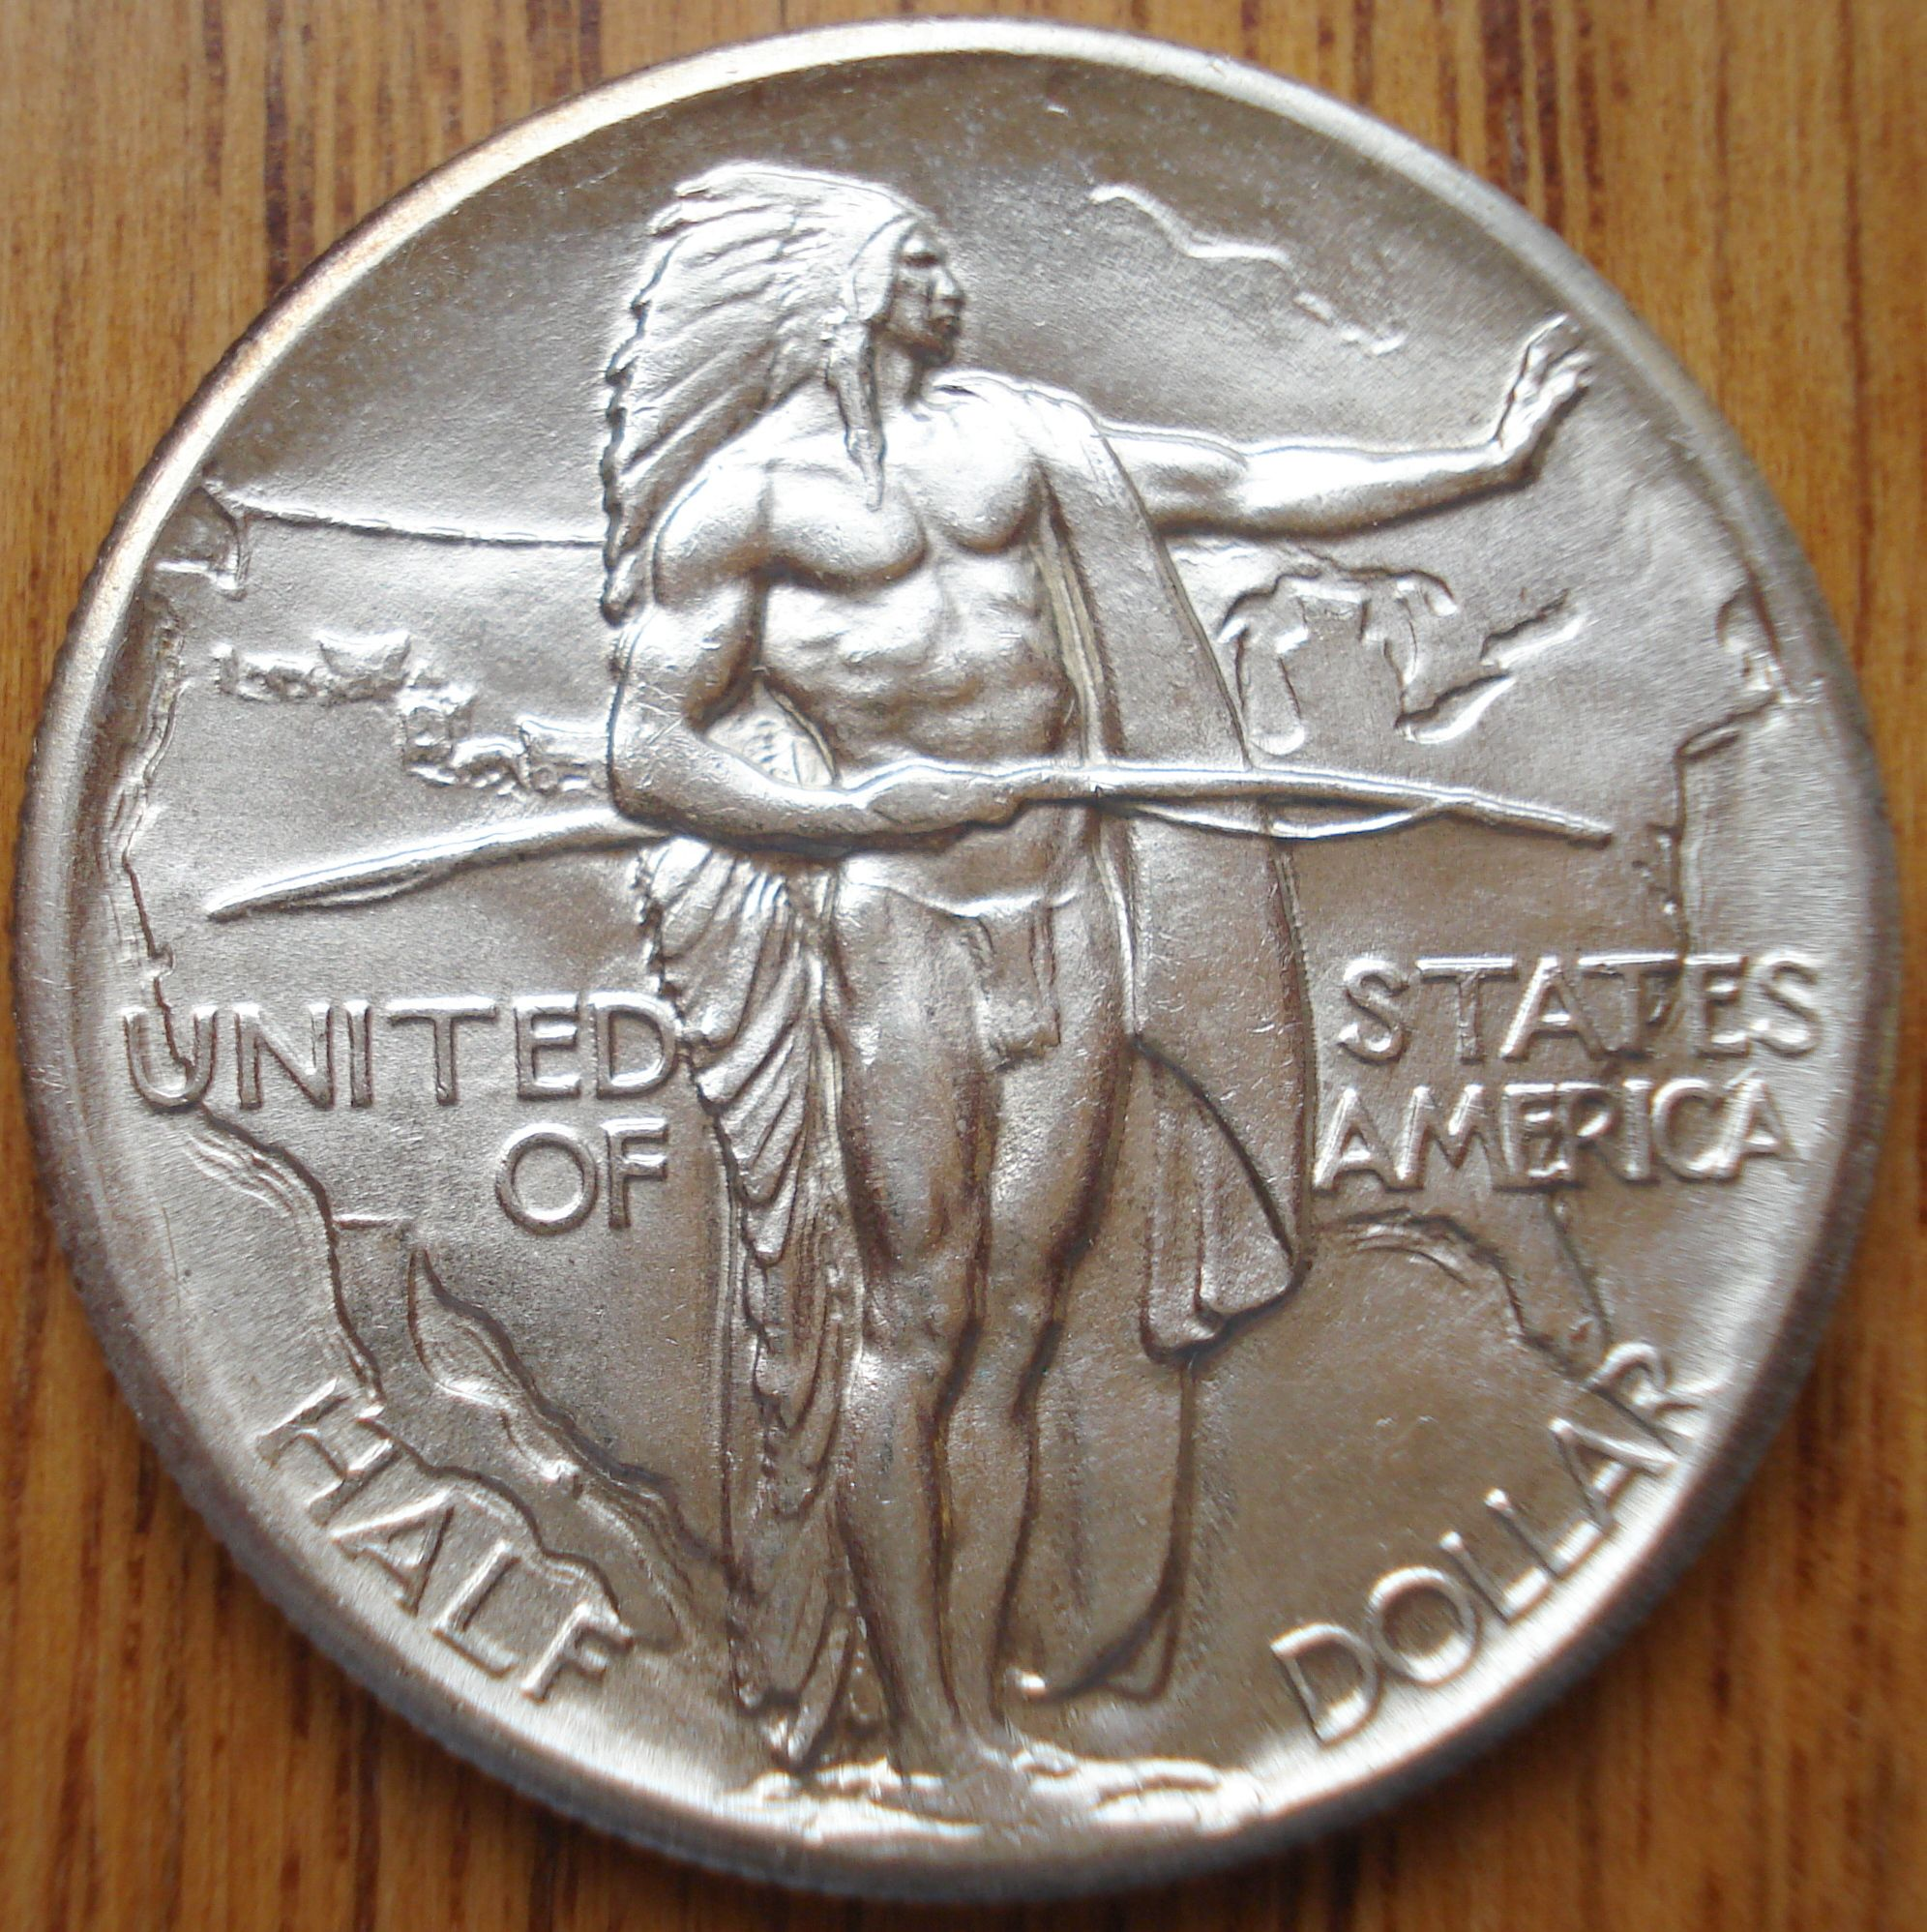 Numismatics: a selection of quotes